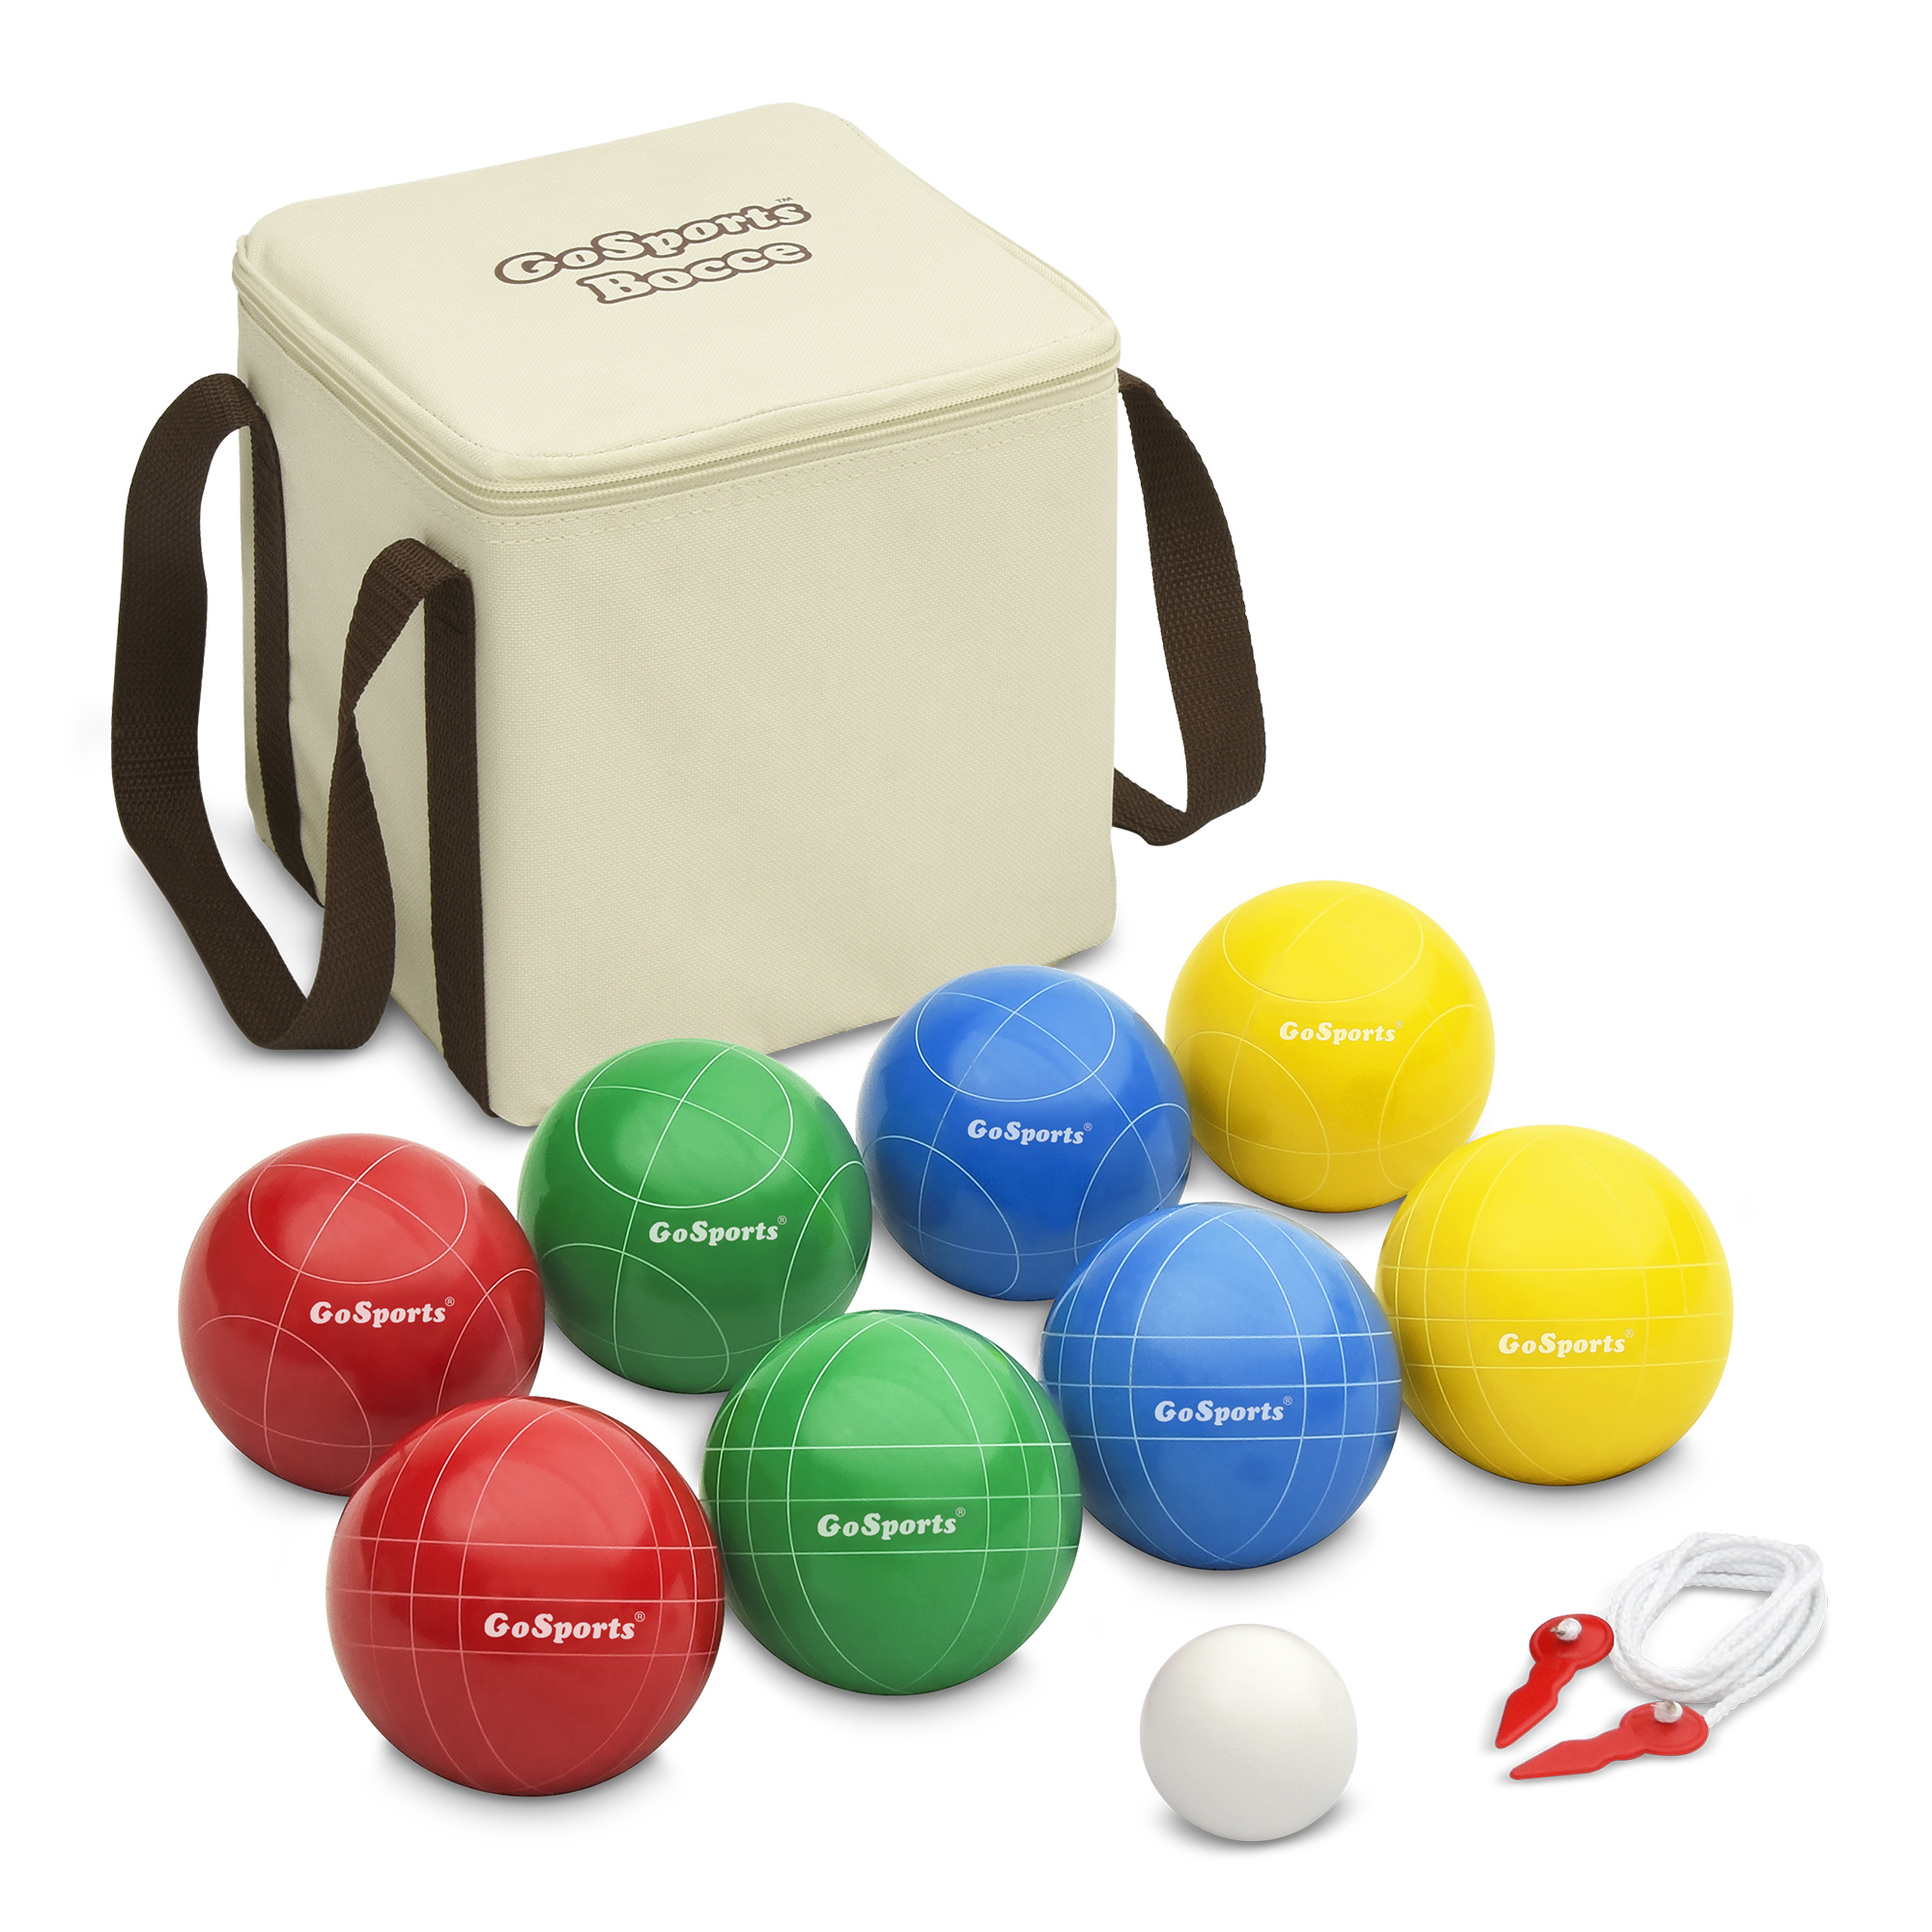 GoSports 90mm Backyard Bocce Set with 8 Balls, Pallino, Portable Carry Case and Measuring Rope by P&P Imports LLC